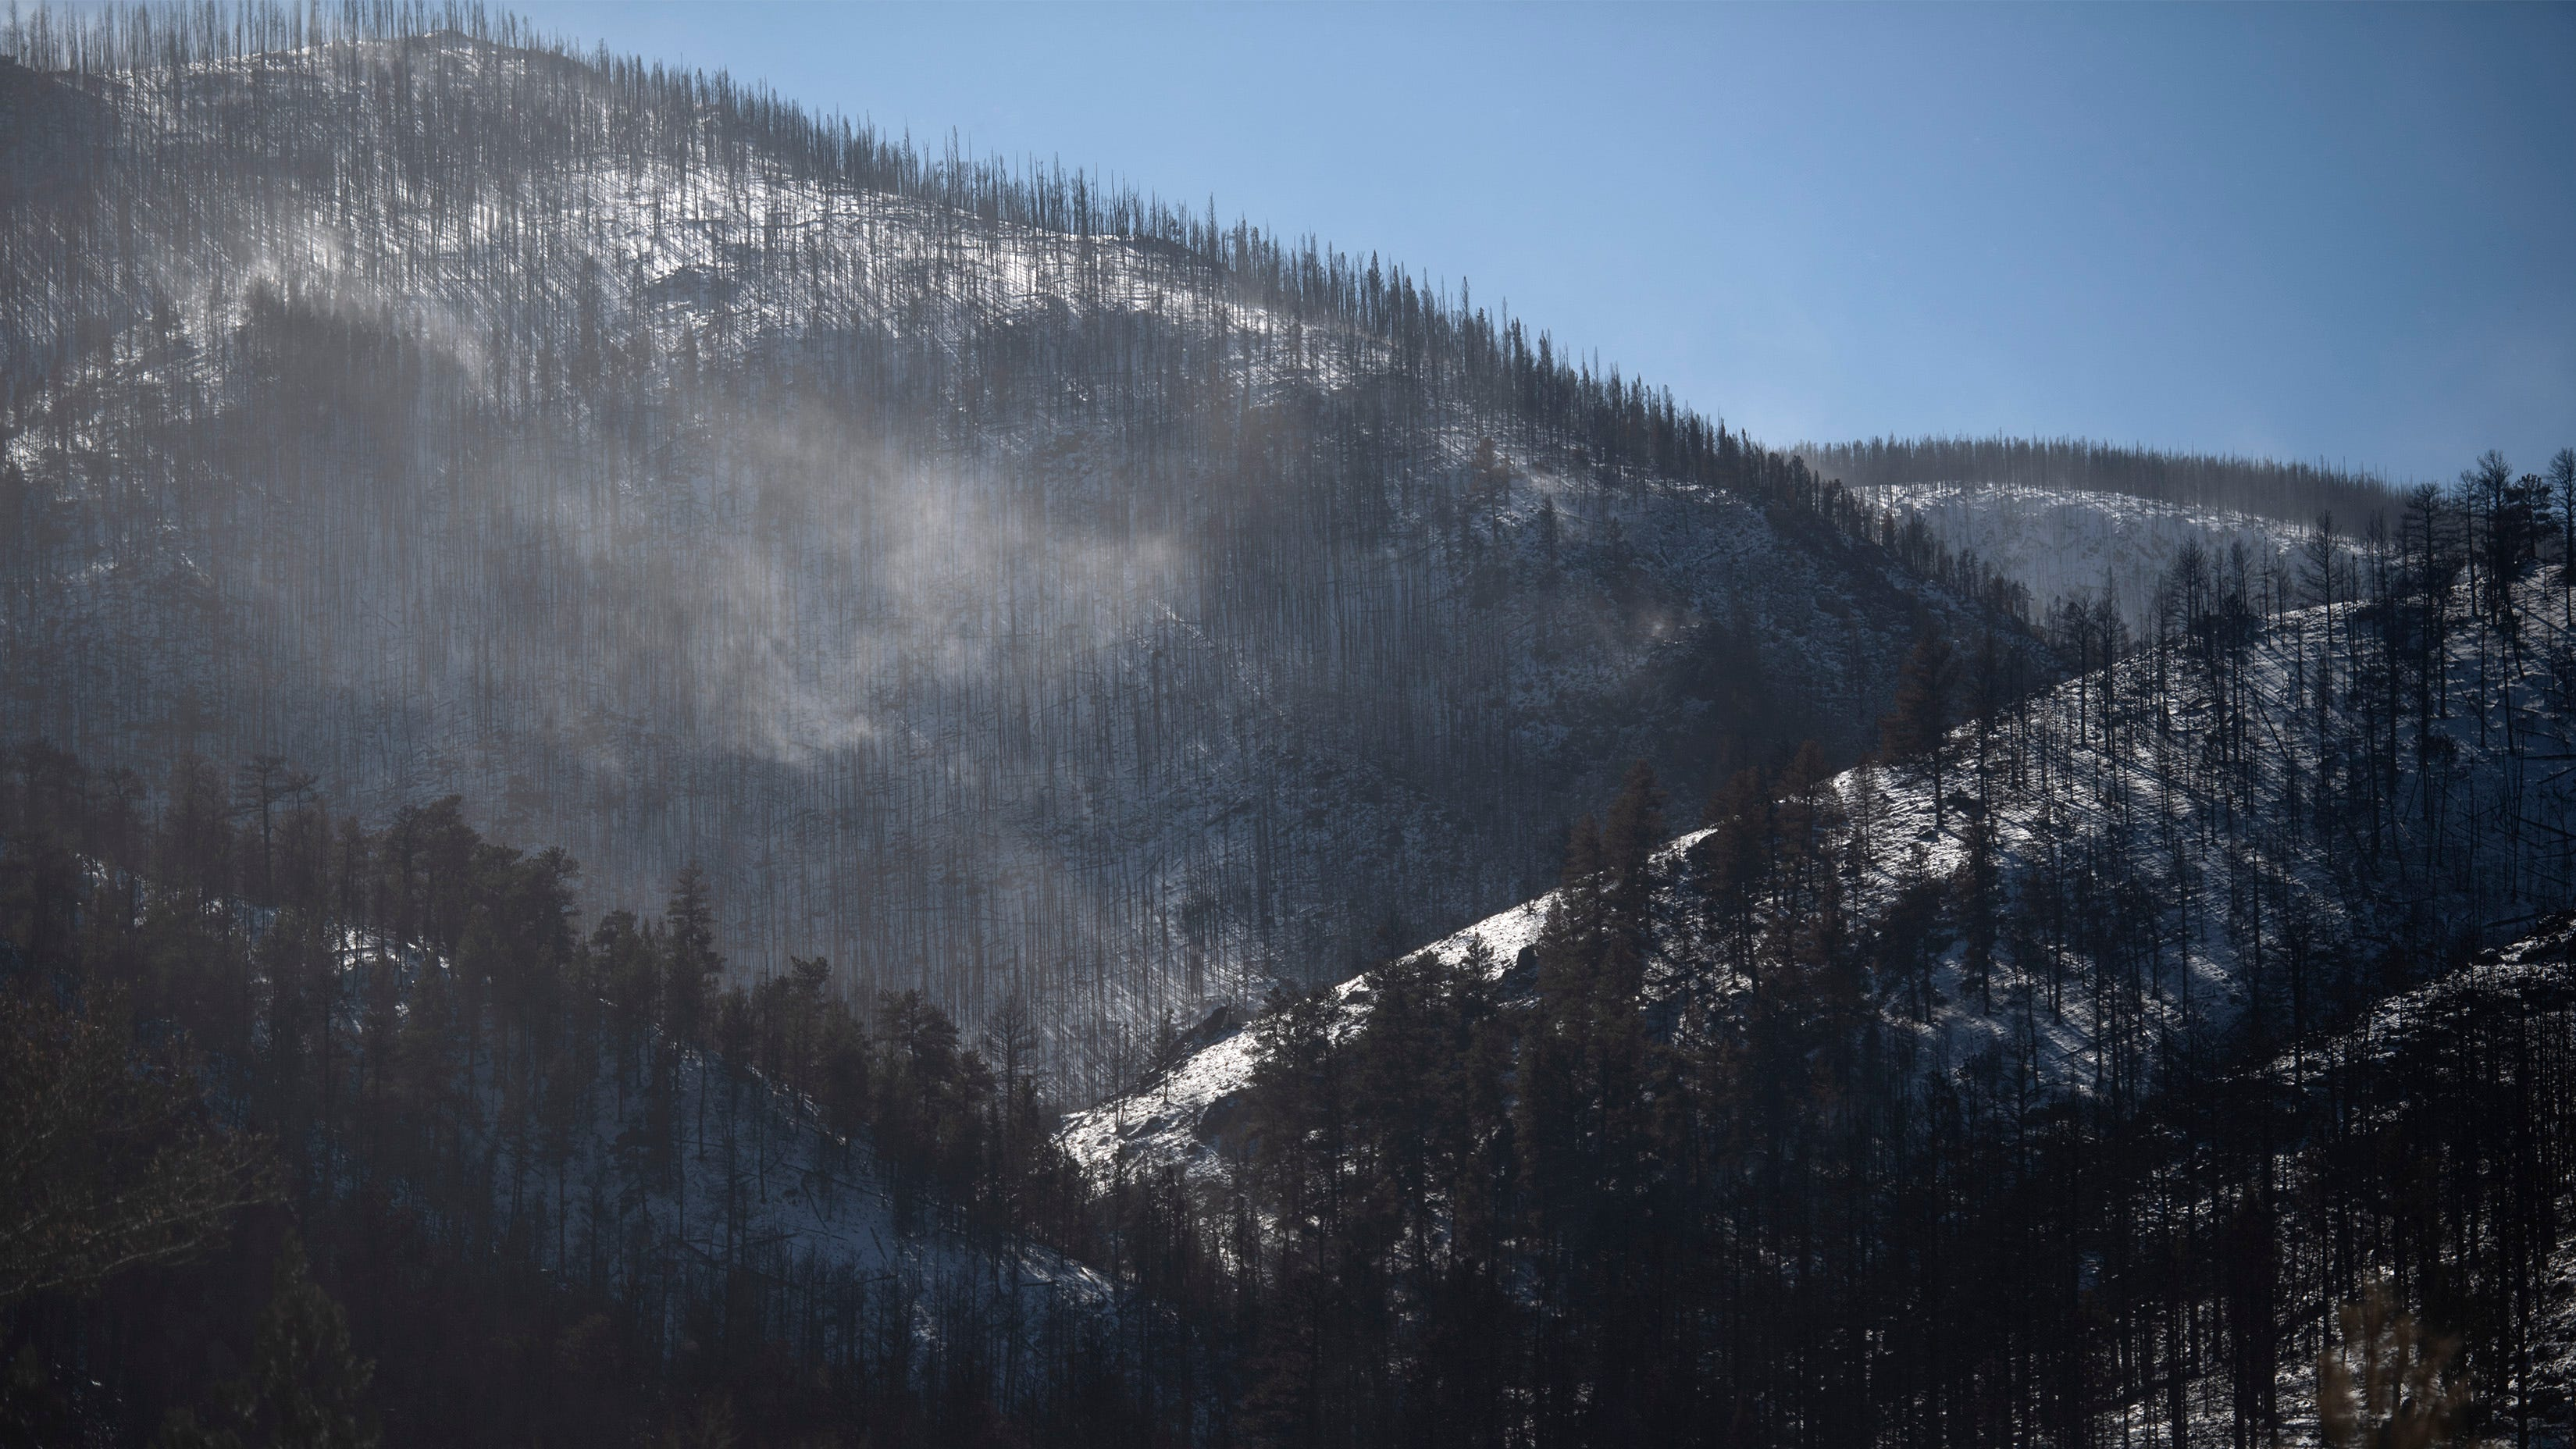 Cameron Peak Fire reaches 100% containment